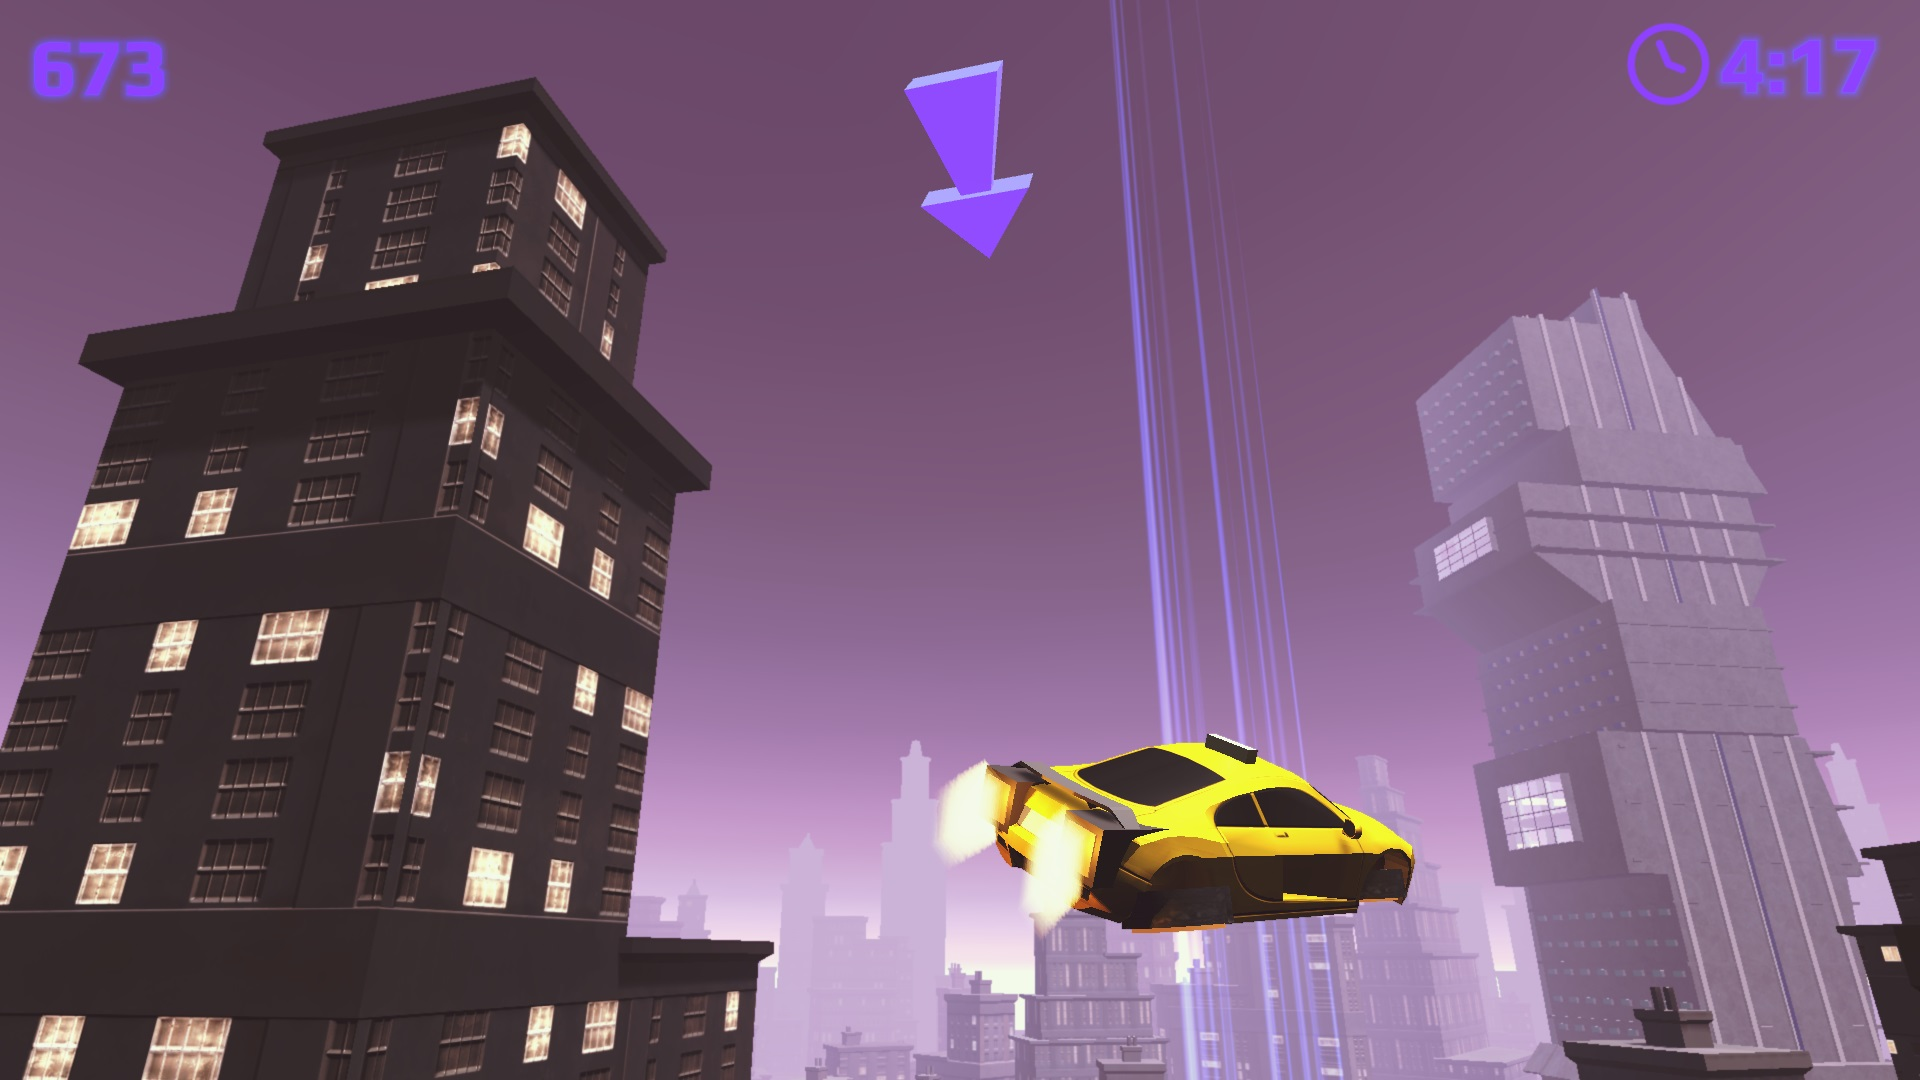 hover cabby